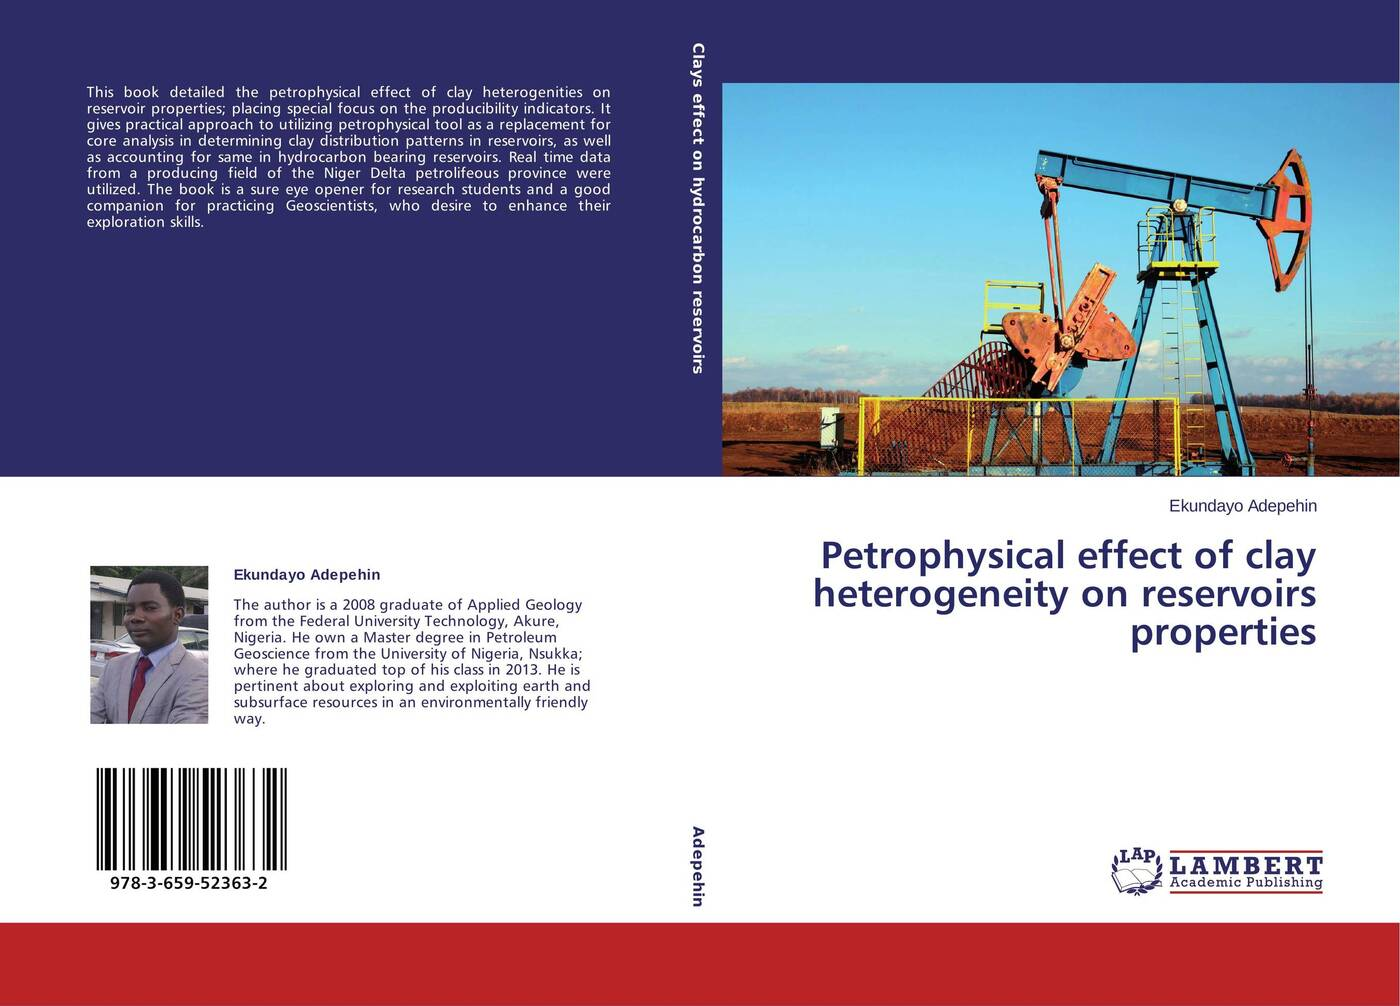 Ekundayo Adepehin Petrophysical effect of clay heterogeneity on reservoirs properties michael archer d the forex chartist companion a visual approach to technical analysis